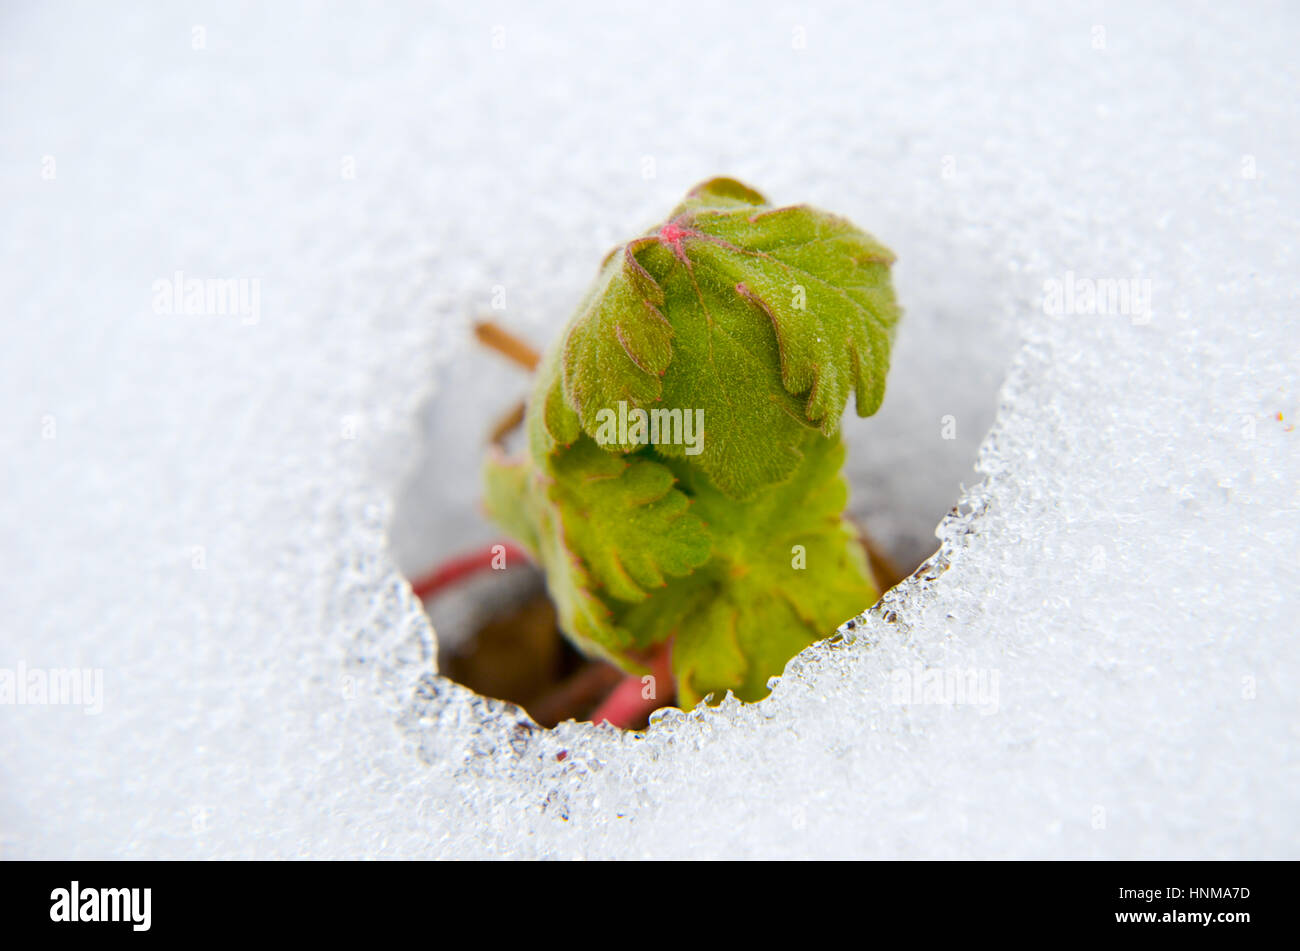 Image of early sprout appearing from melting snowcover in spring - Stock Image